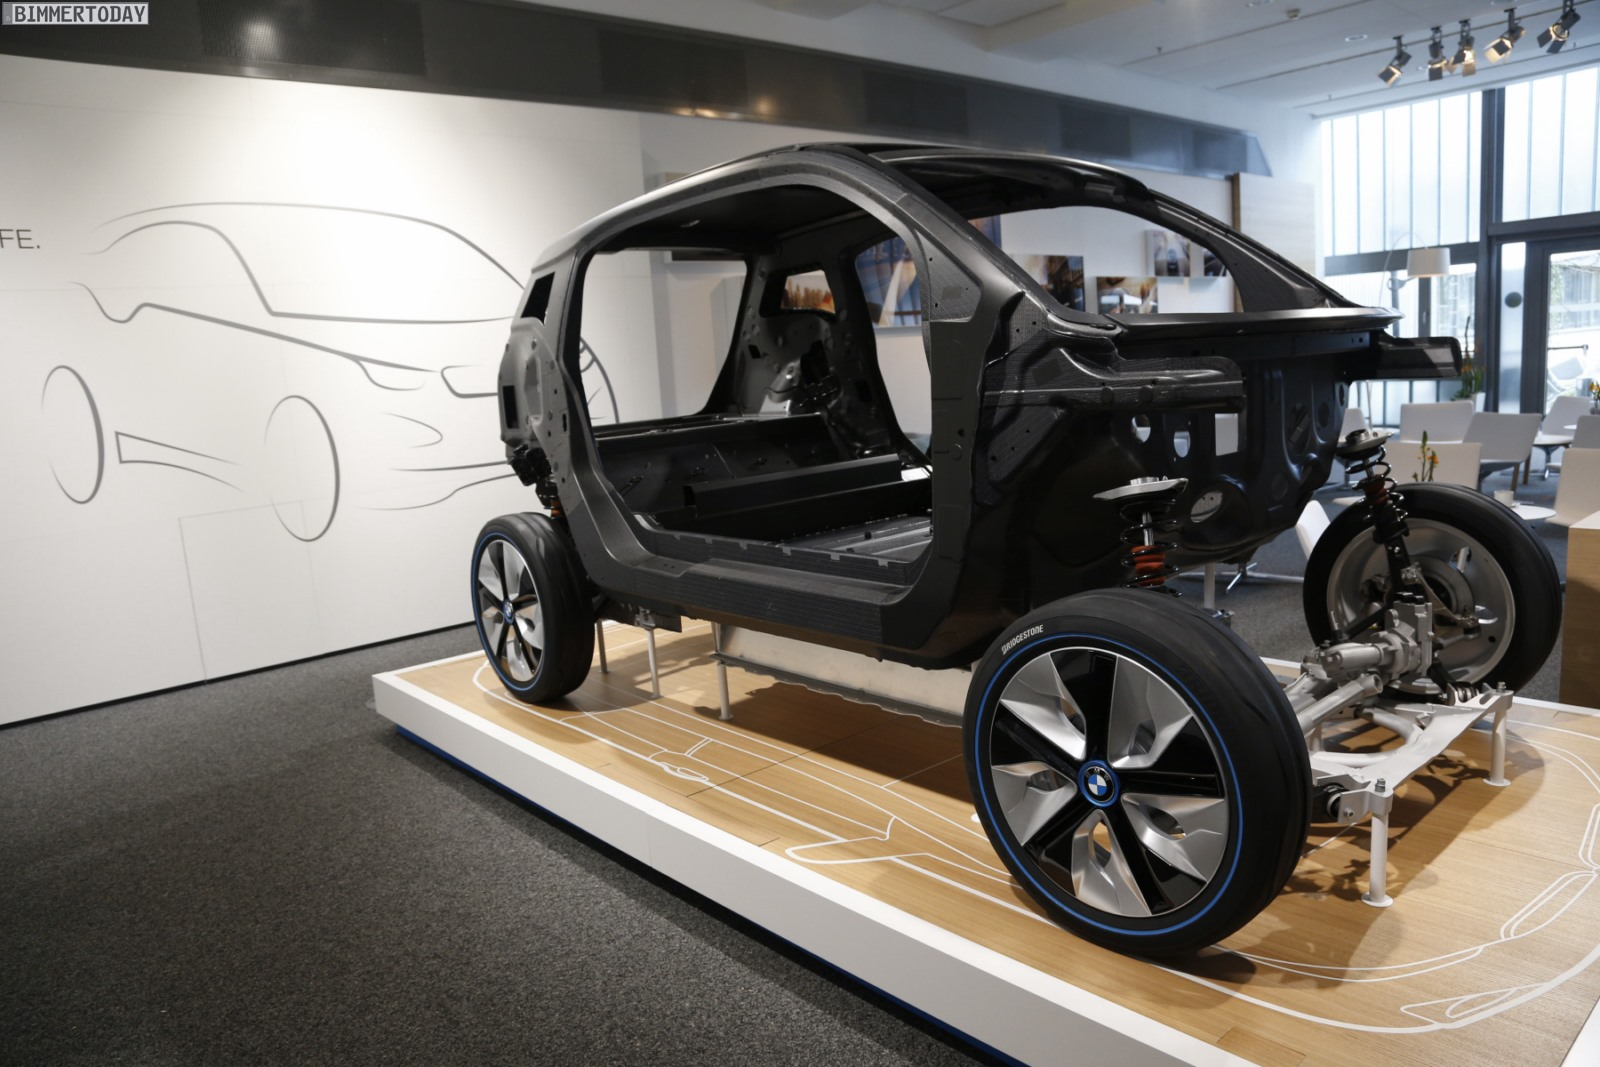 bmw i3 reparatur kosten trotz carbon auf augenh he mit. Black Bedroom Furniture Sets. Home Design Ideas